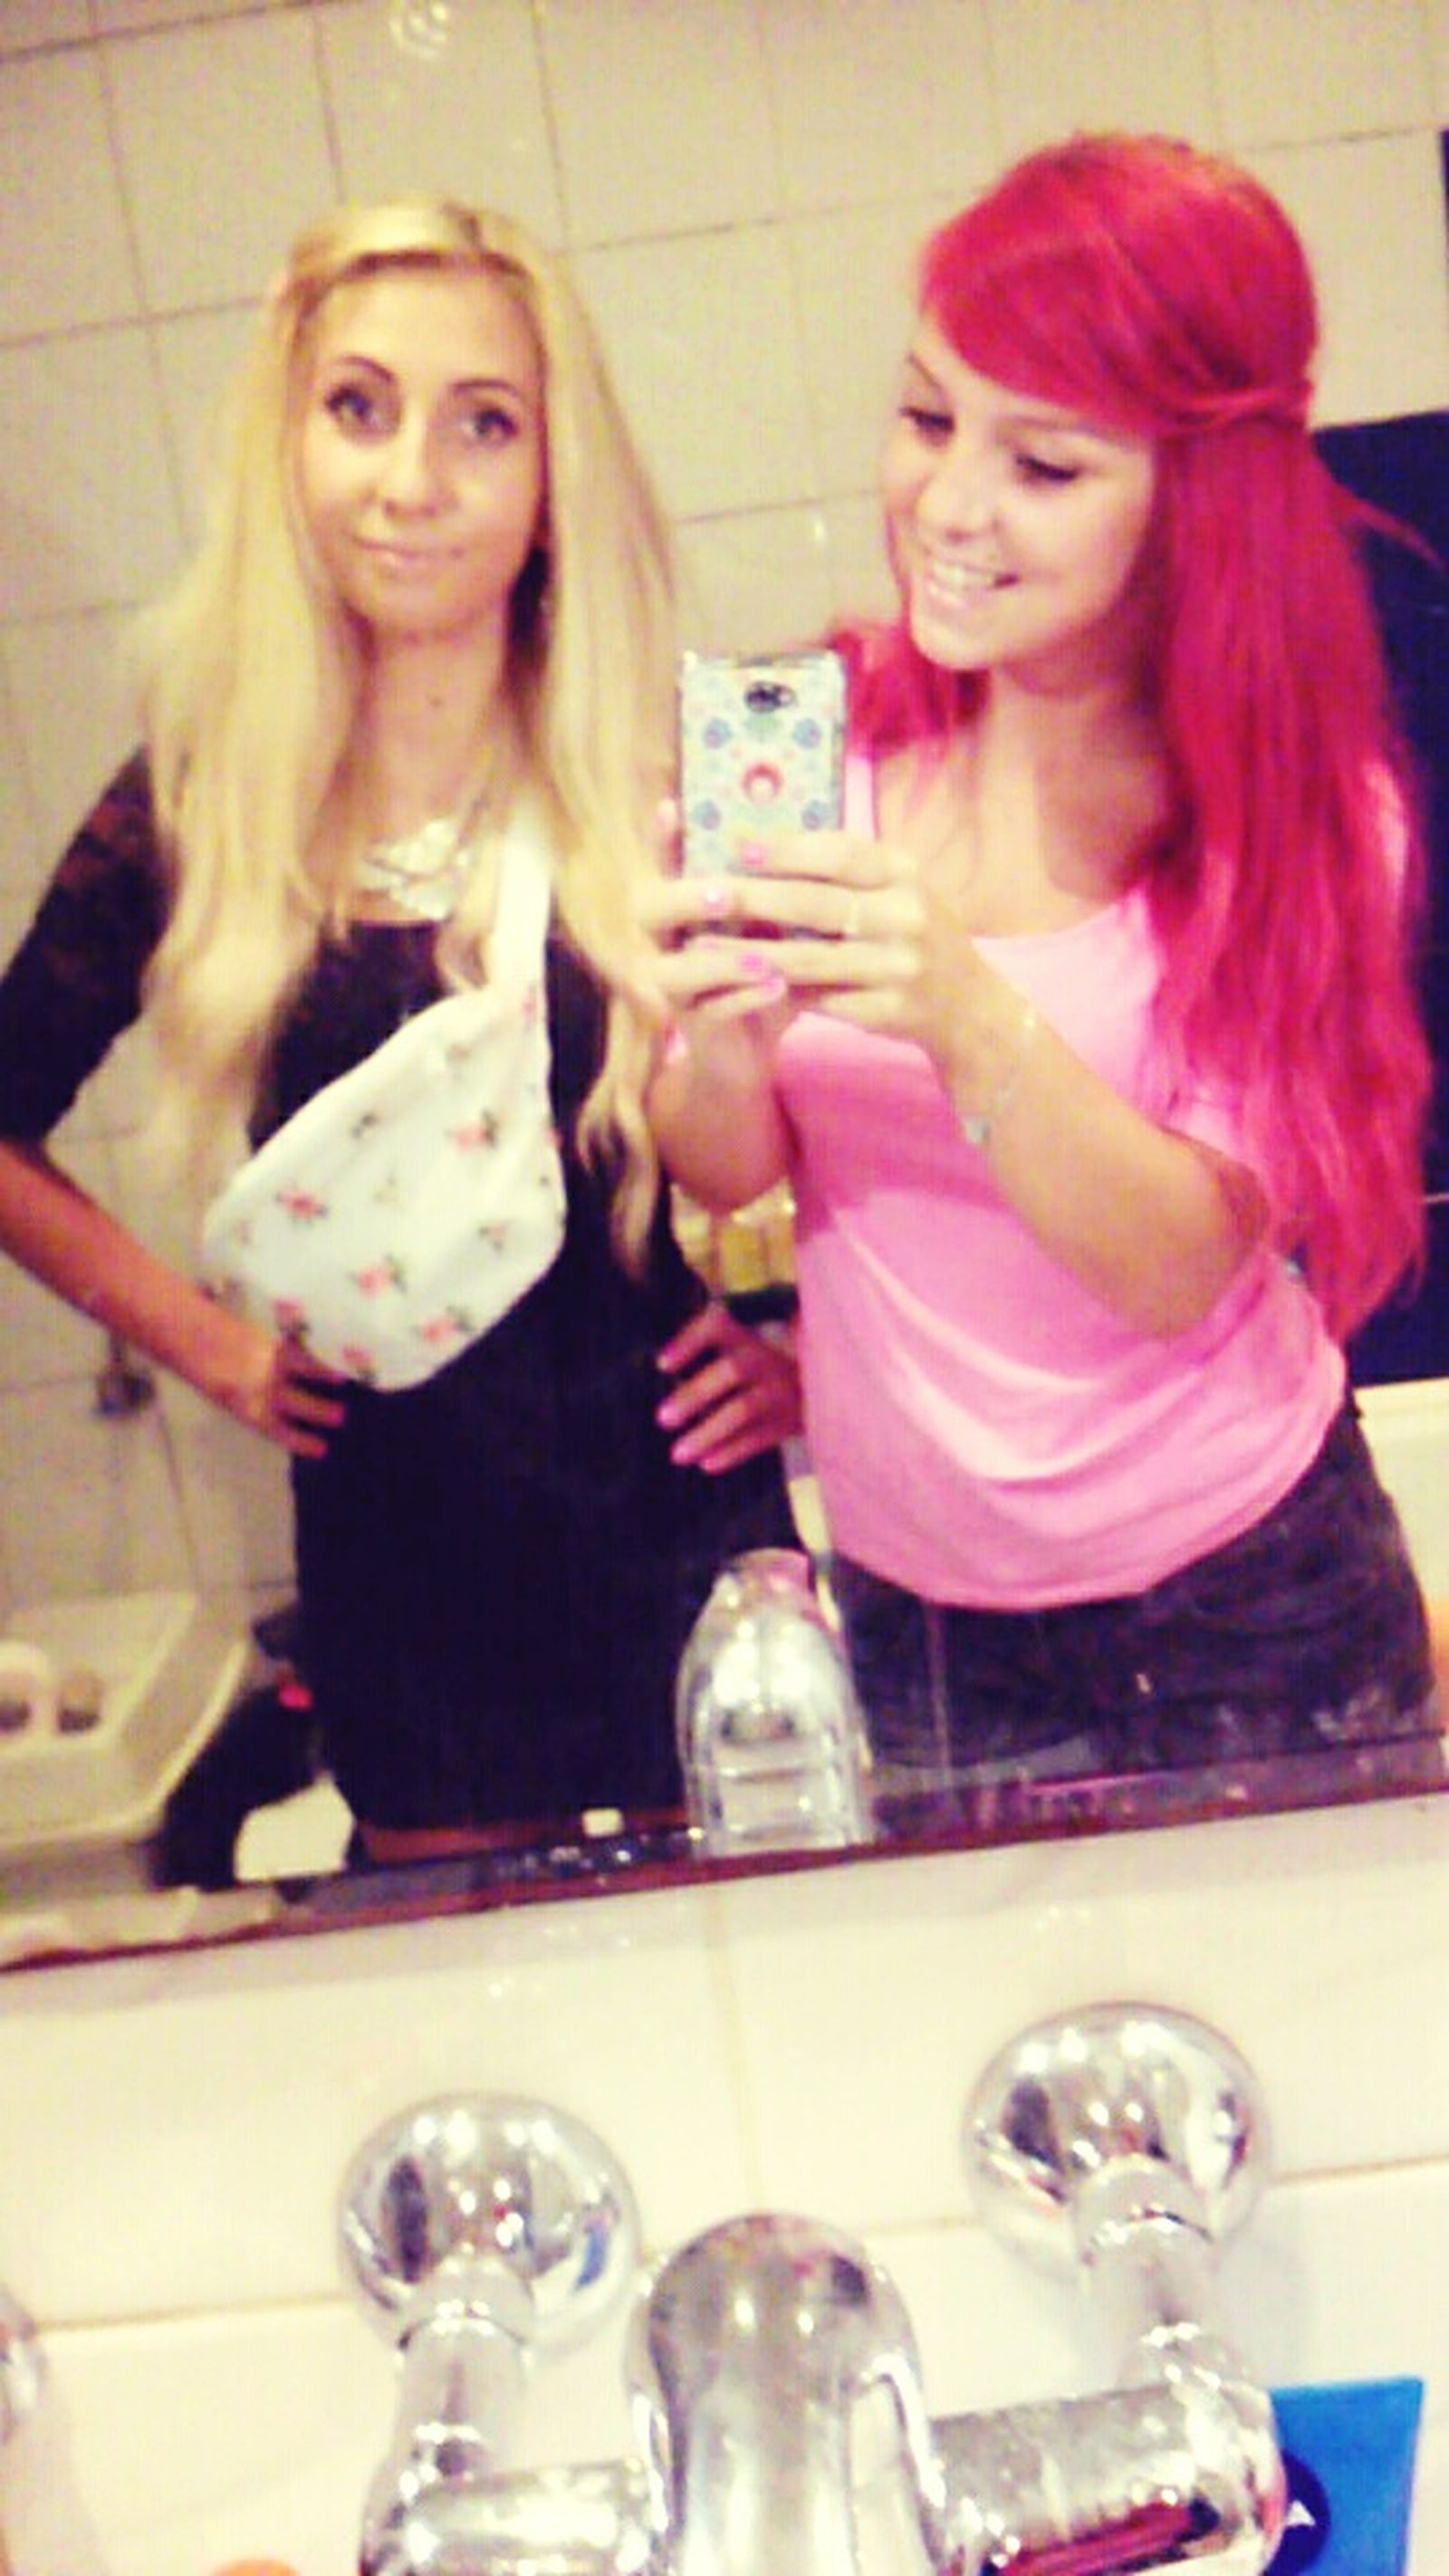 Gąski ; D Longhair Love ♥ Redhair Blonde Hair Party Time Polishgirl Sumertime